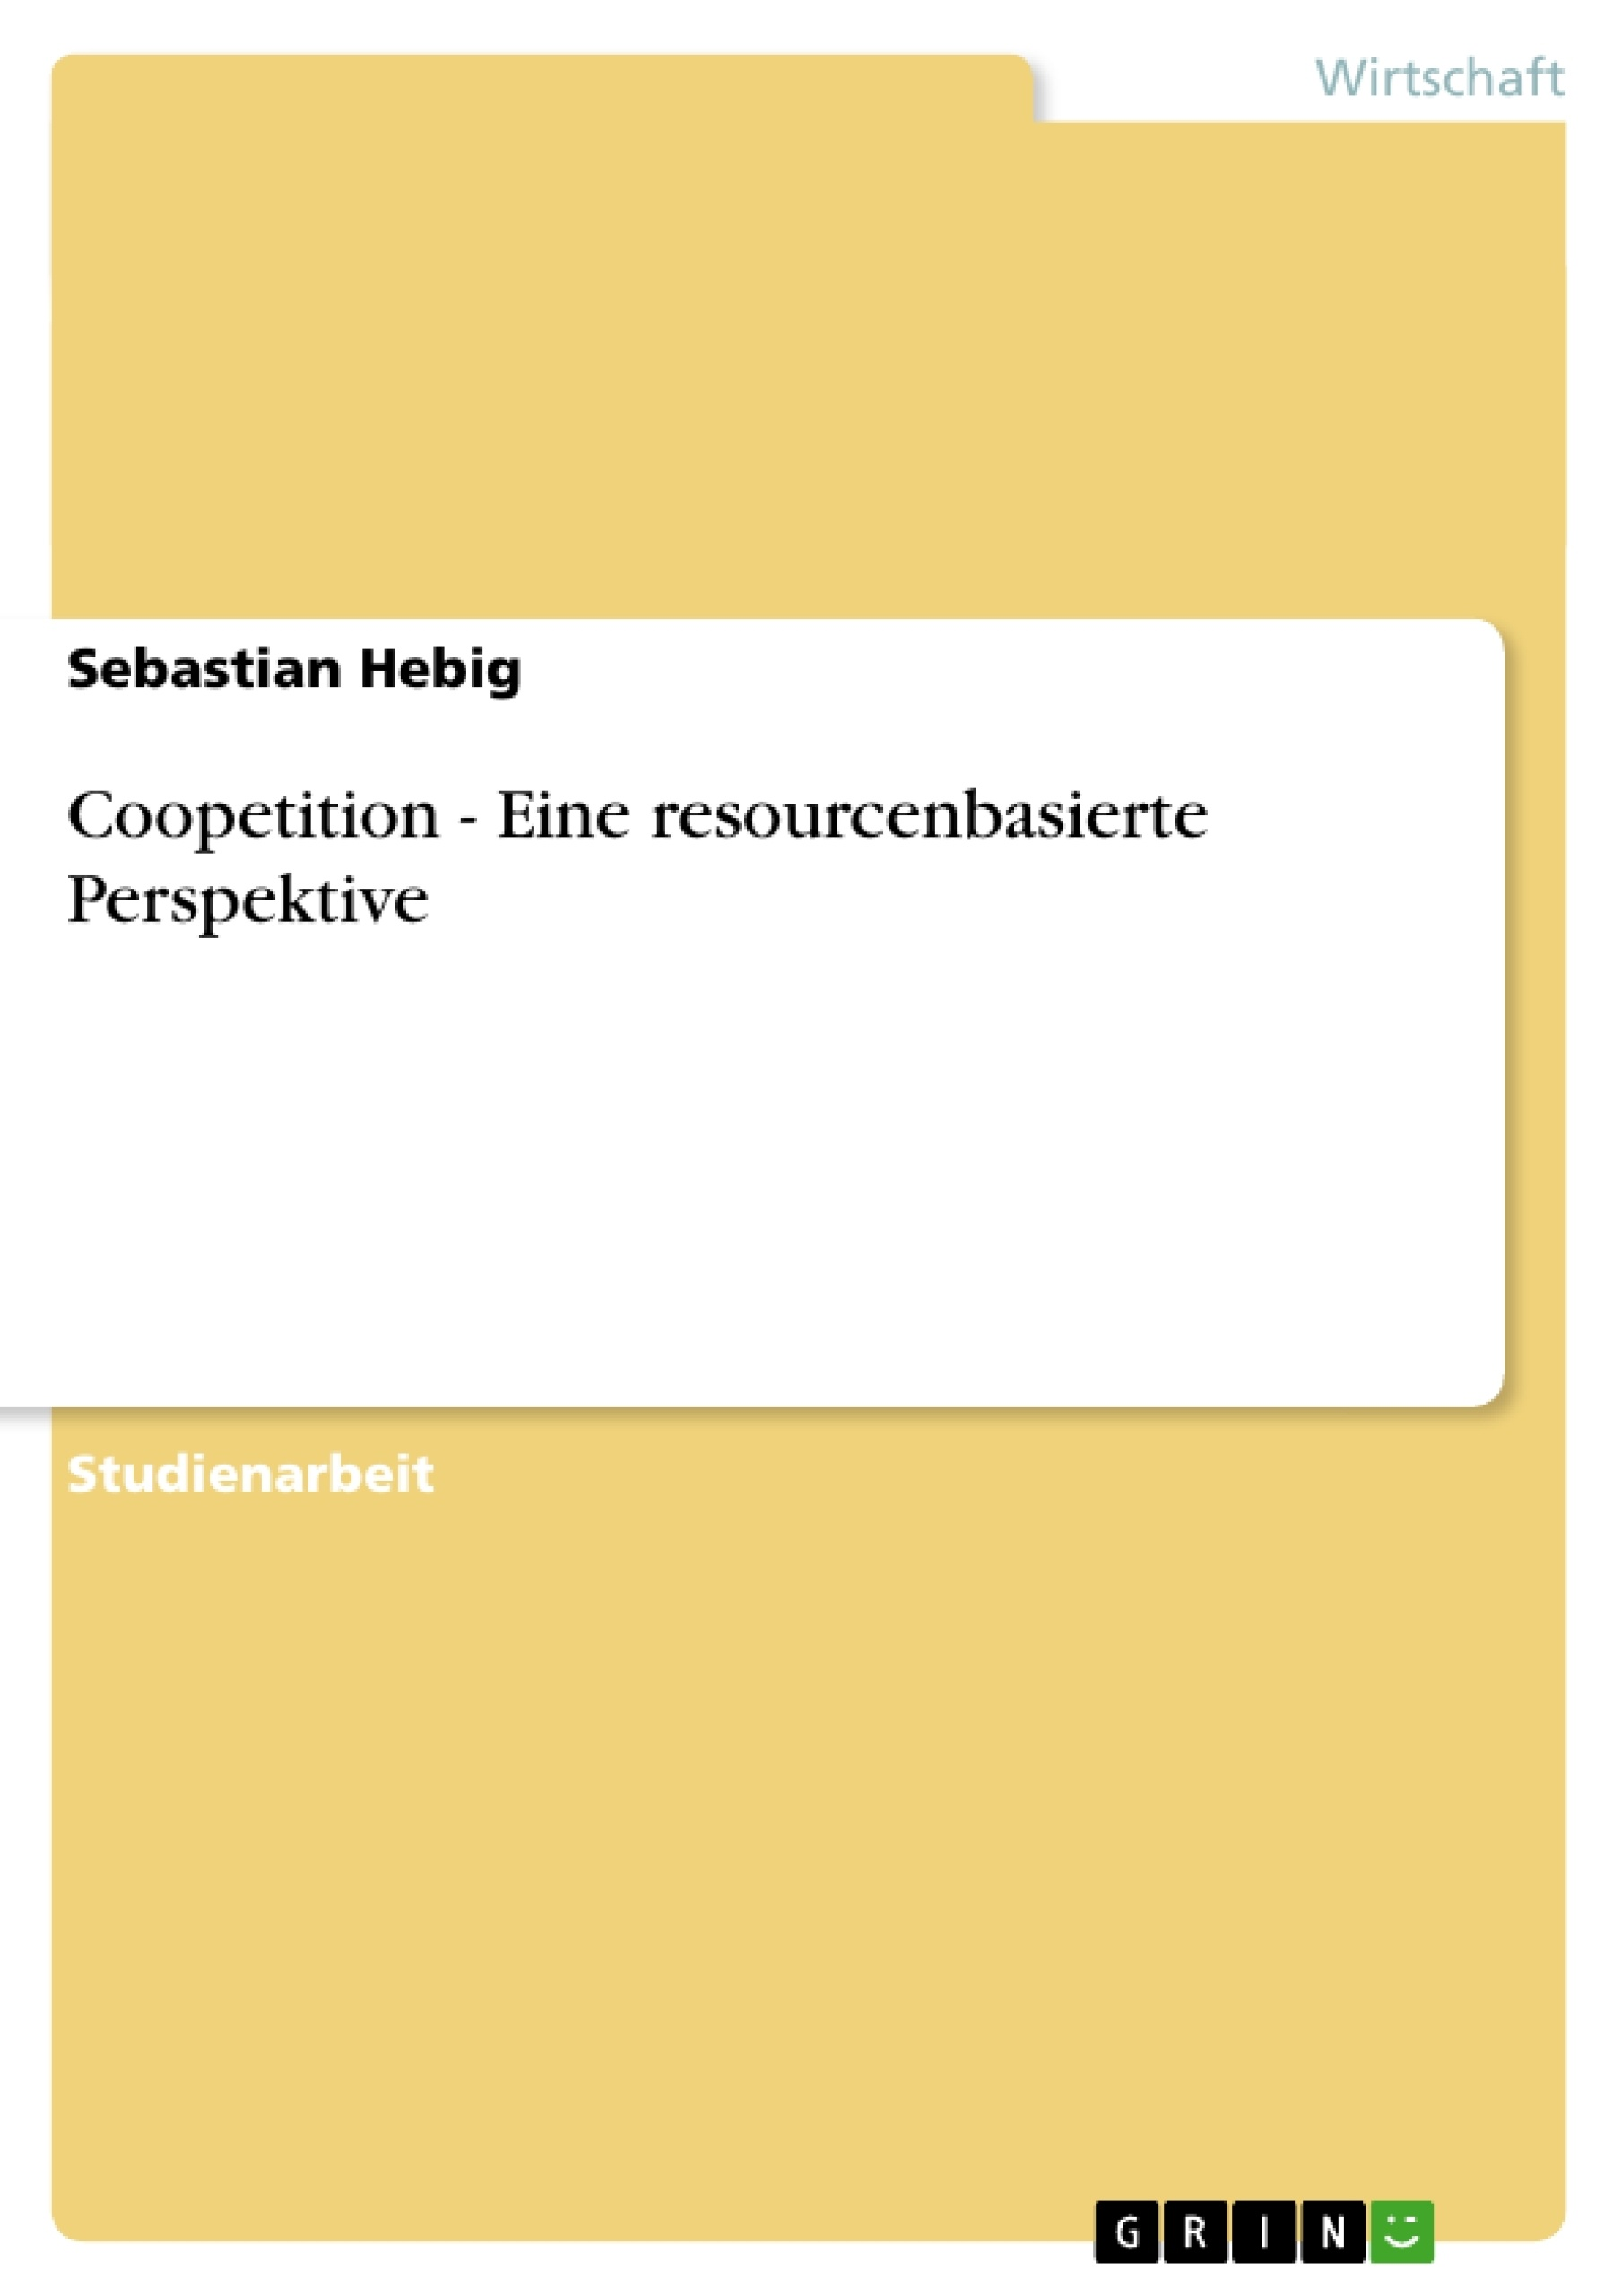 Titel: Coopetition - Eine resourcenbasierte Perspektive